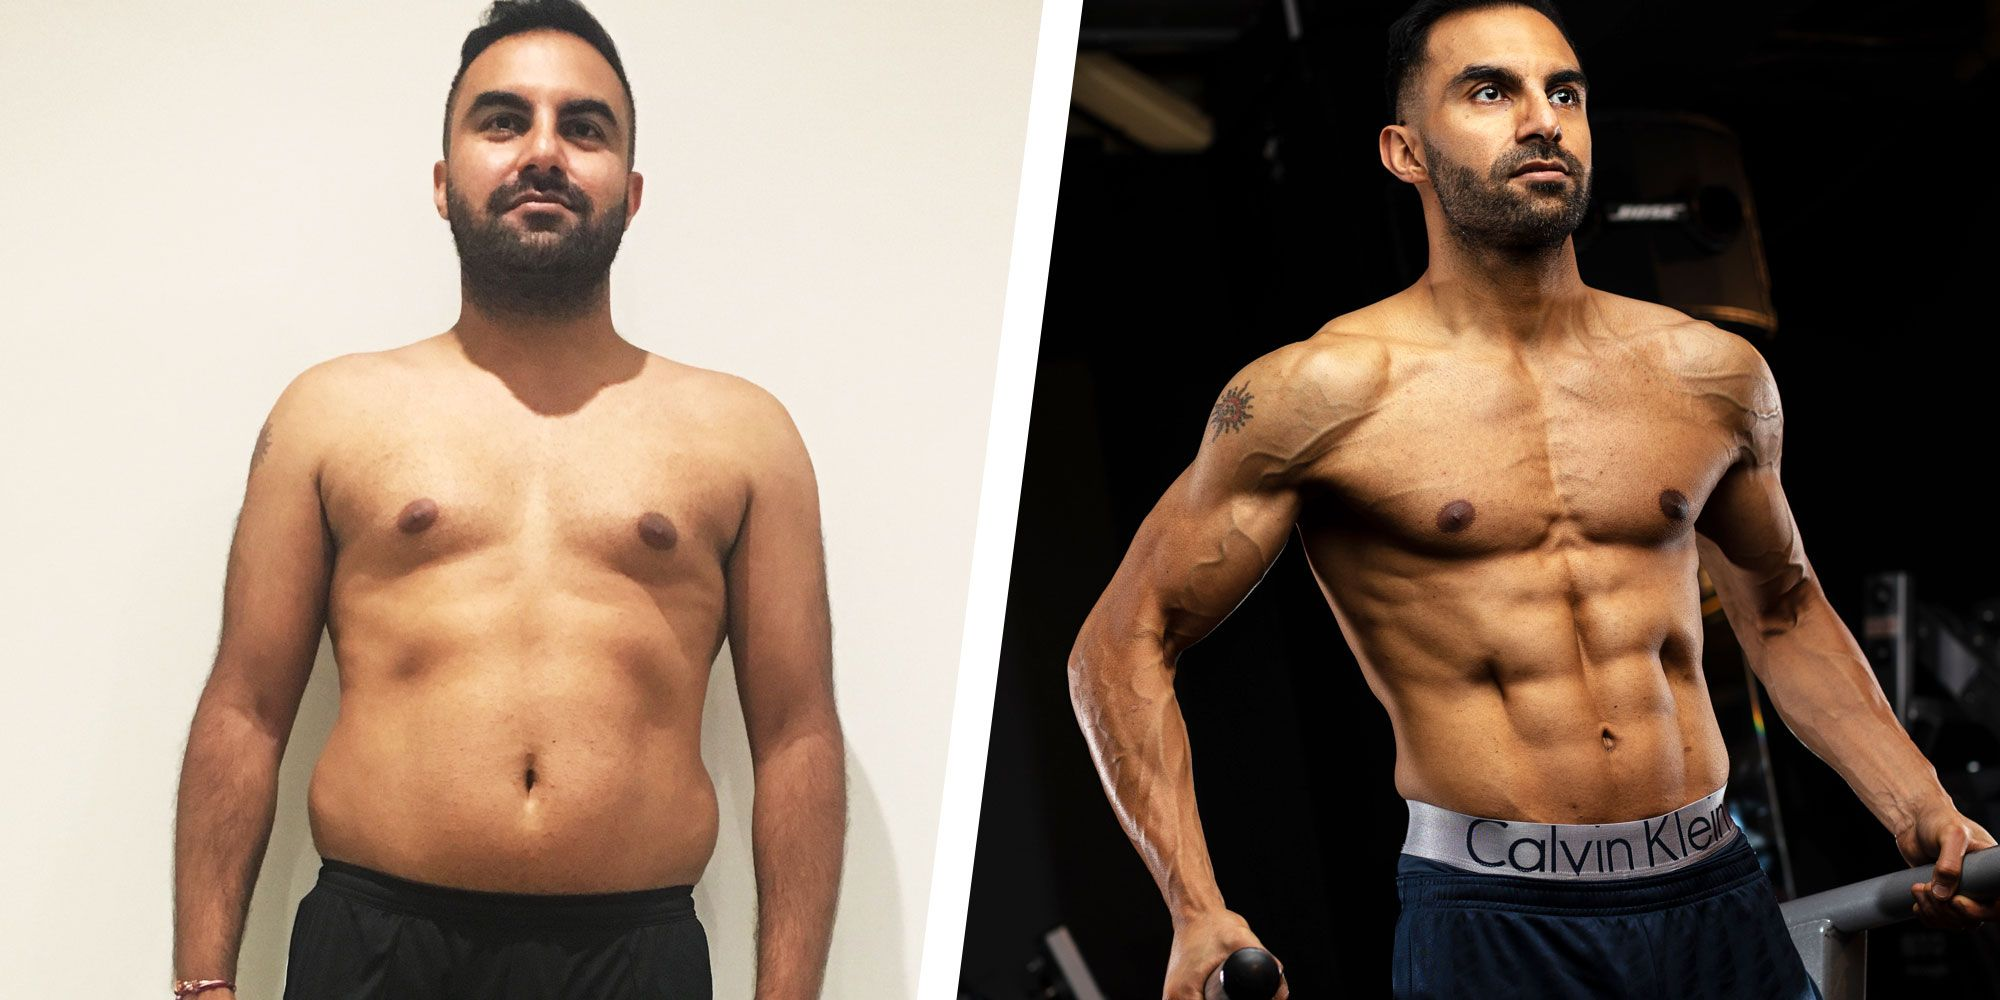 This Guy Overhauled His Diet and Workout to Lose 50 Pounds and Get Shredded